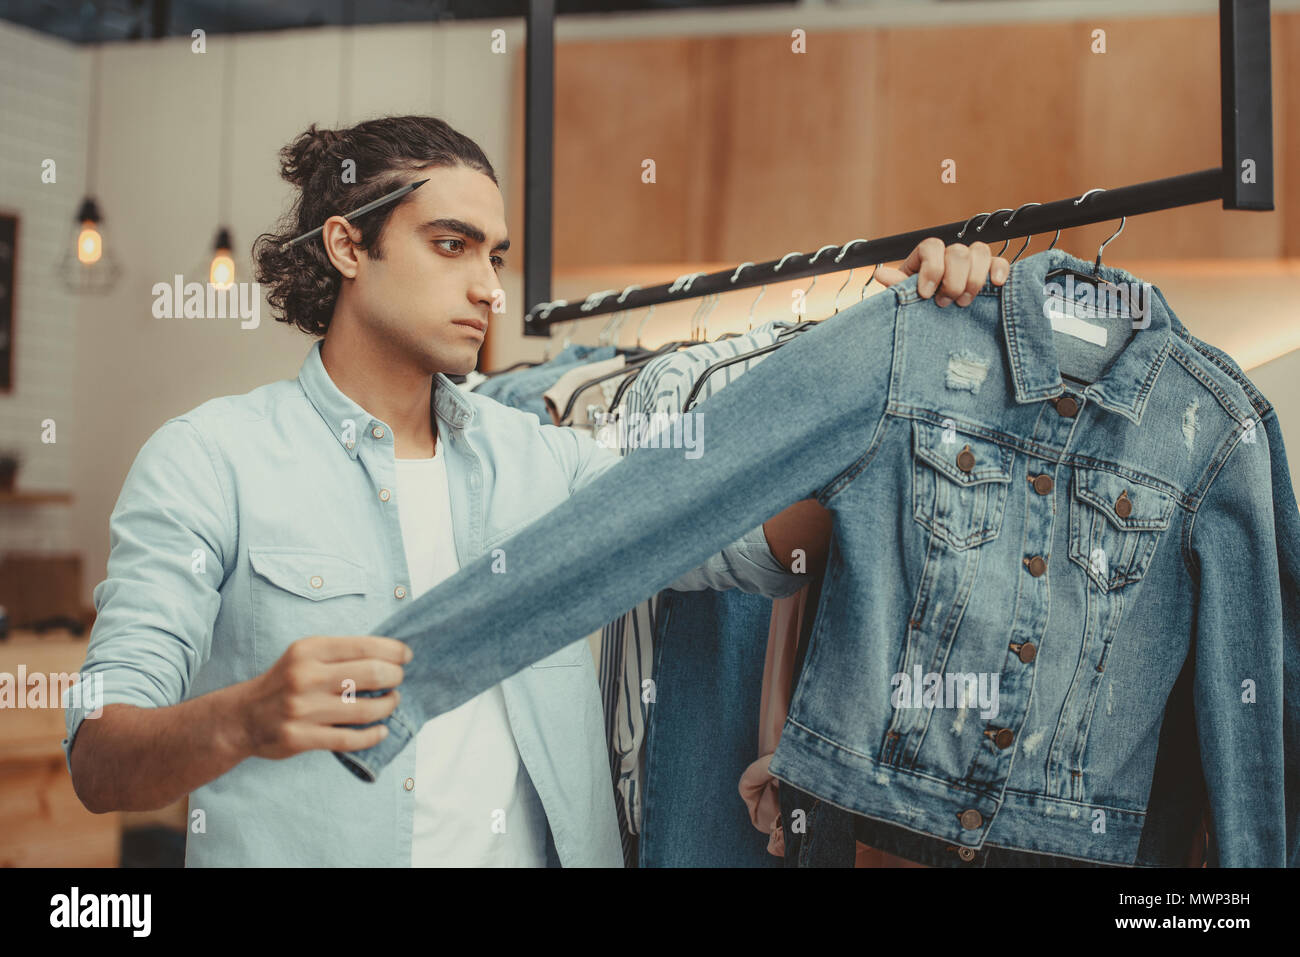 serious young shop owner holding denim jacket in boutique - Stock Image